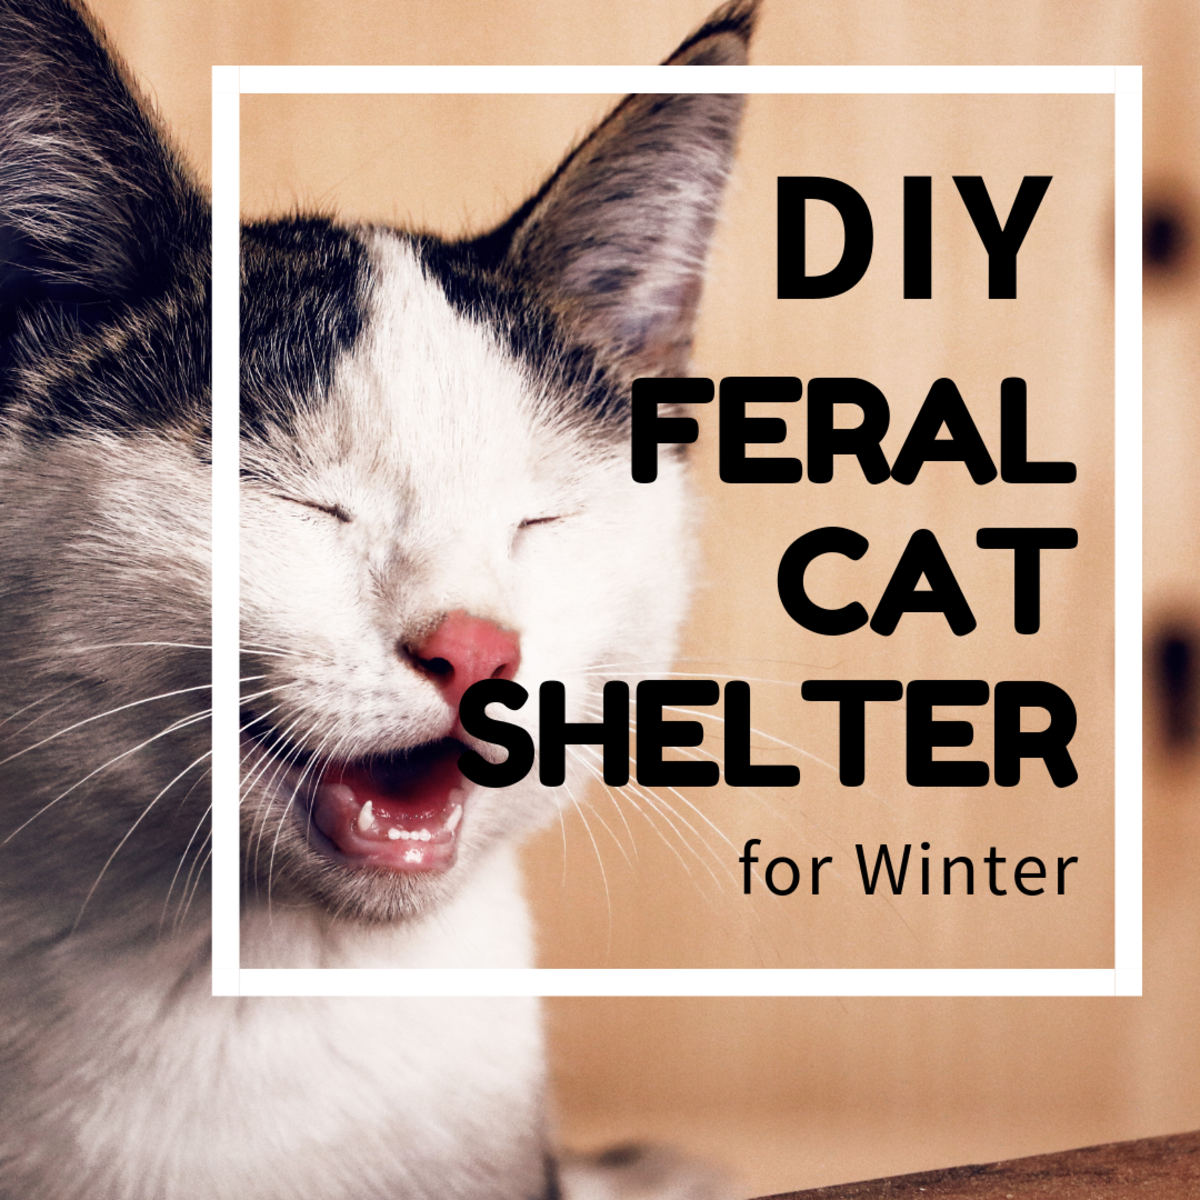 DIY Cat Shelter for Ferals in the Winter